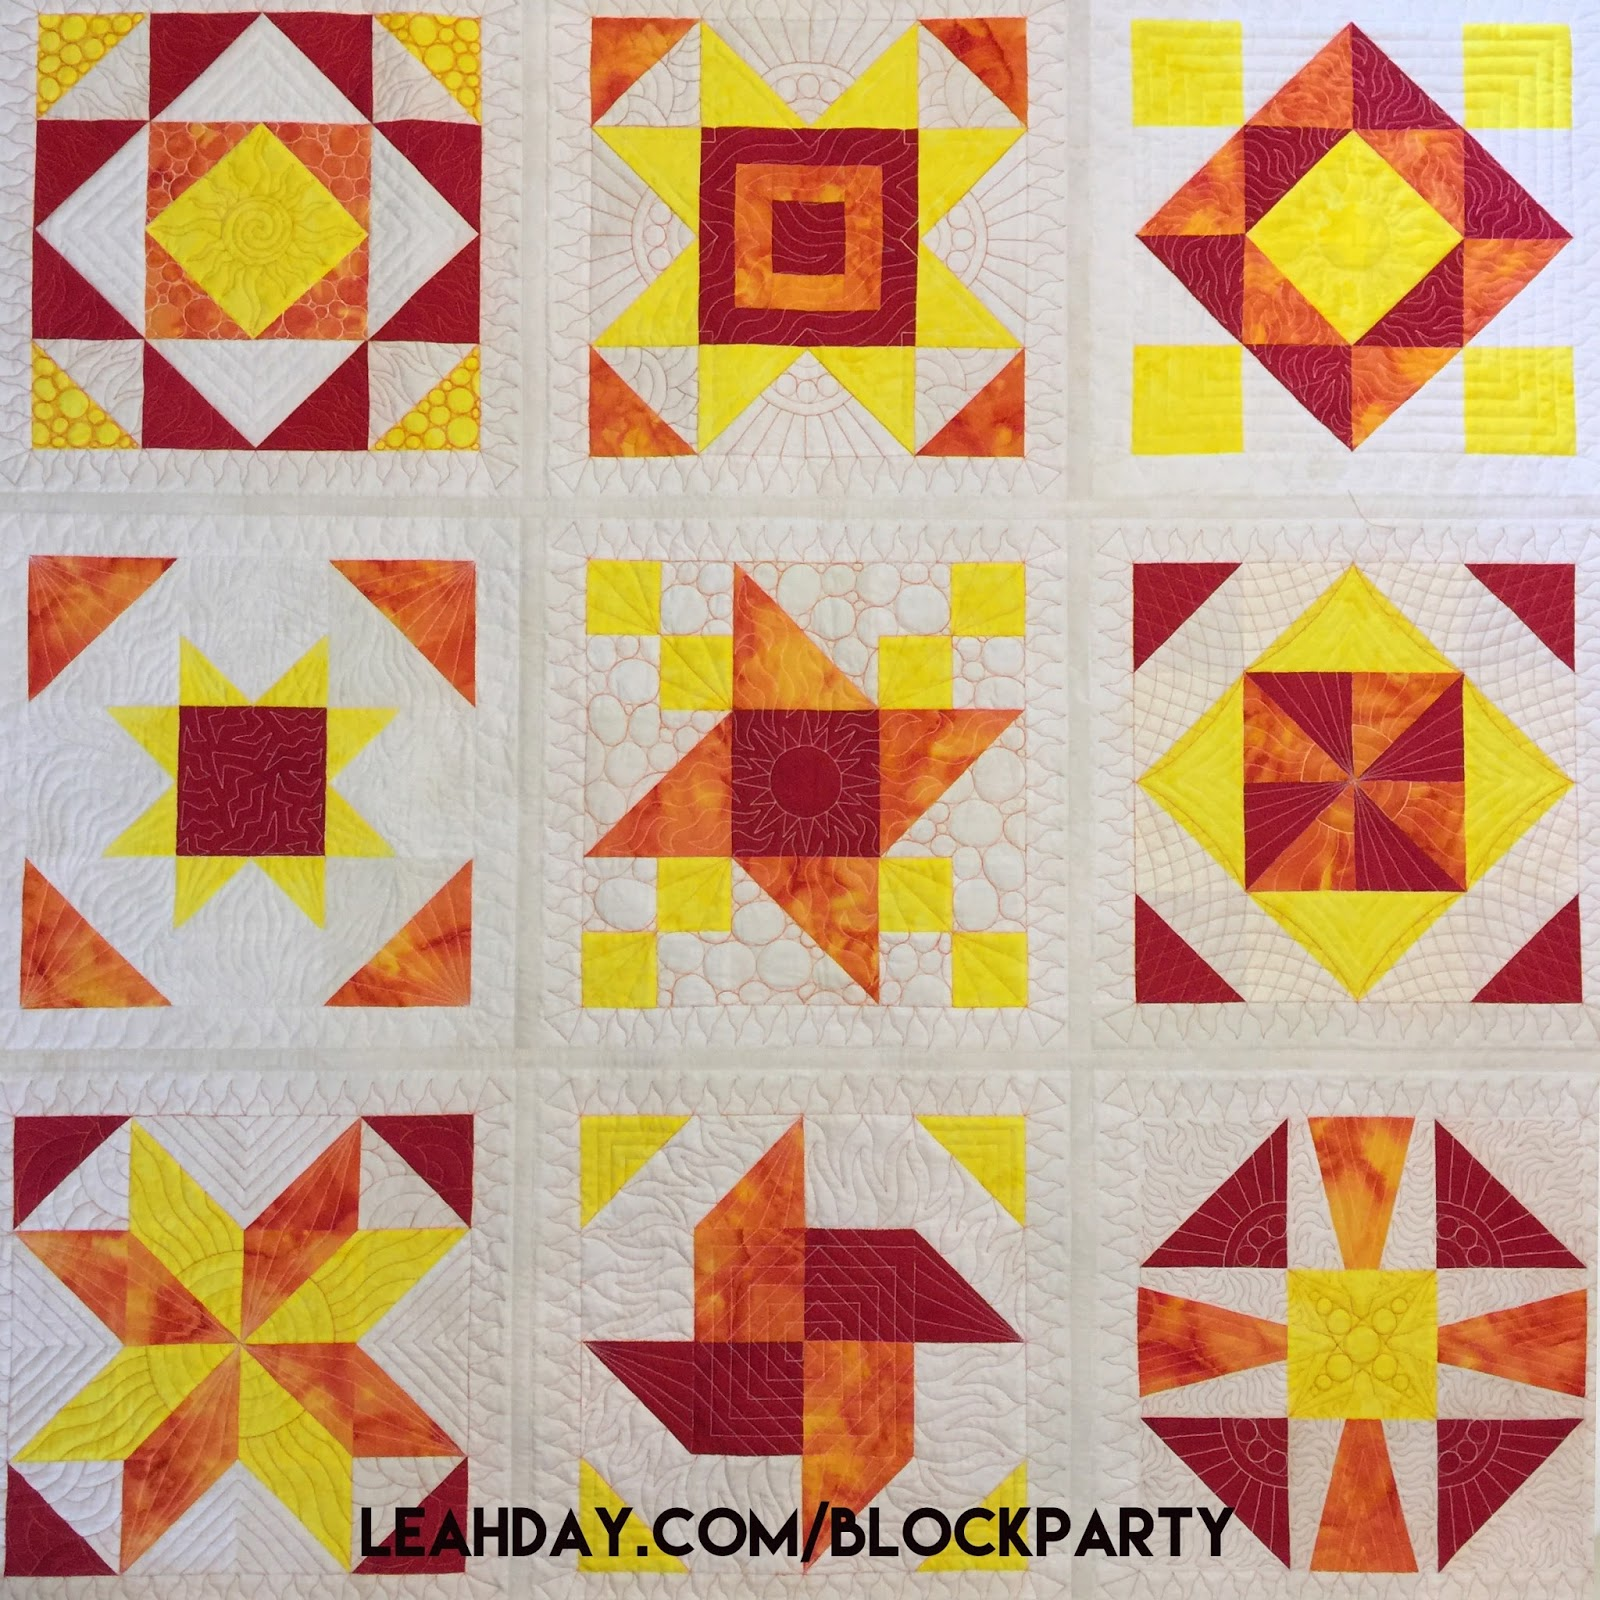 The Free Motion Quilting Project: Quilt As You Go ...